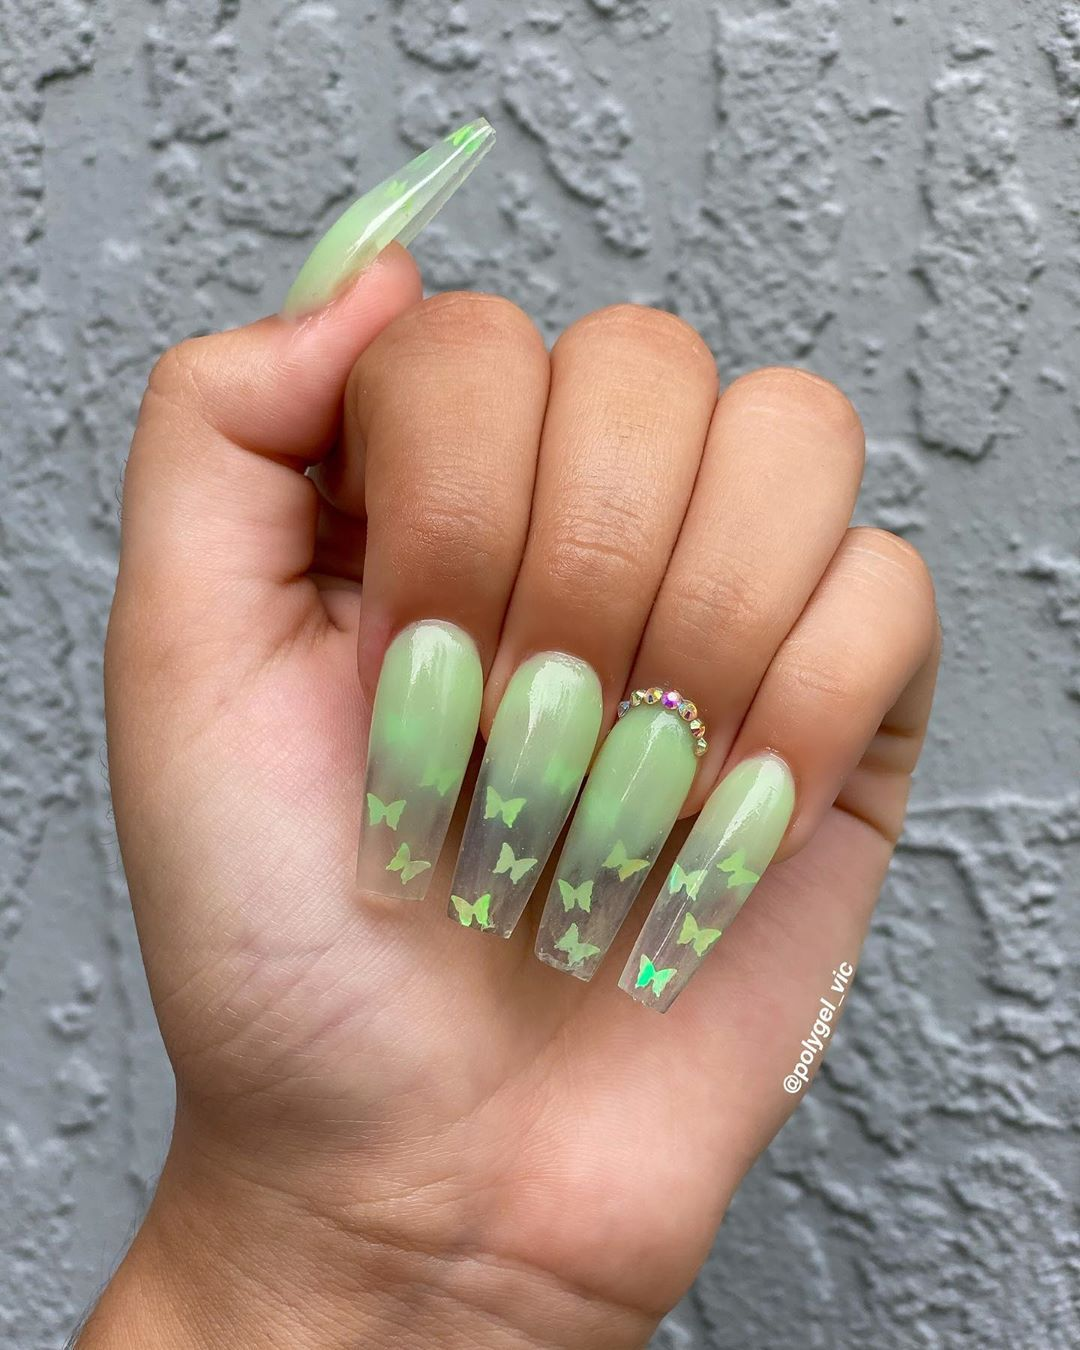 Nails By Vic On Instagram Just Did These Nails On A Live Stream On Youtube Thank You To Everyone Who Joi In 2020 Best Acrylic Nails Polygel Nails Cute Acrylic Nails